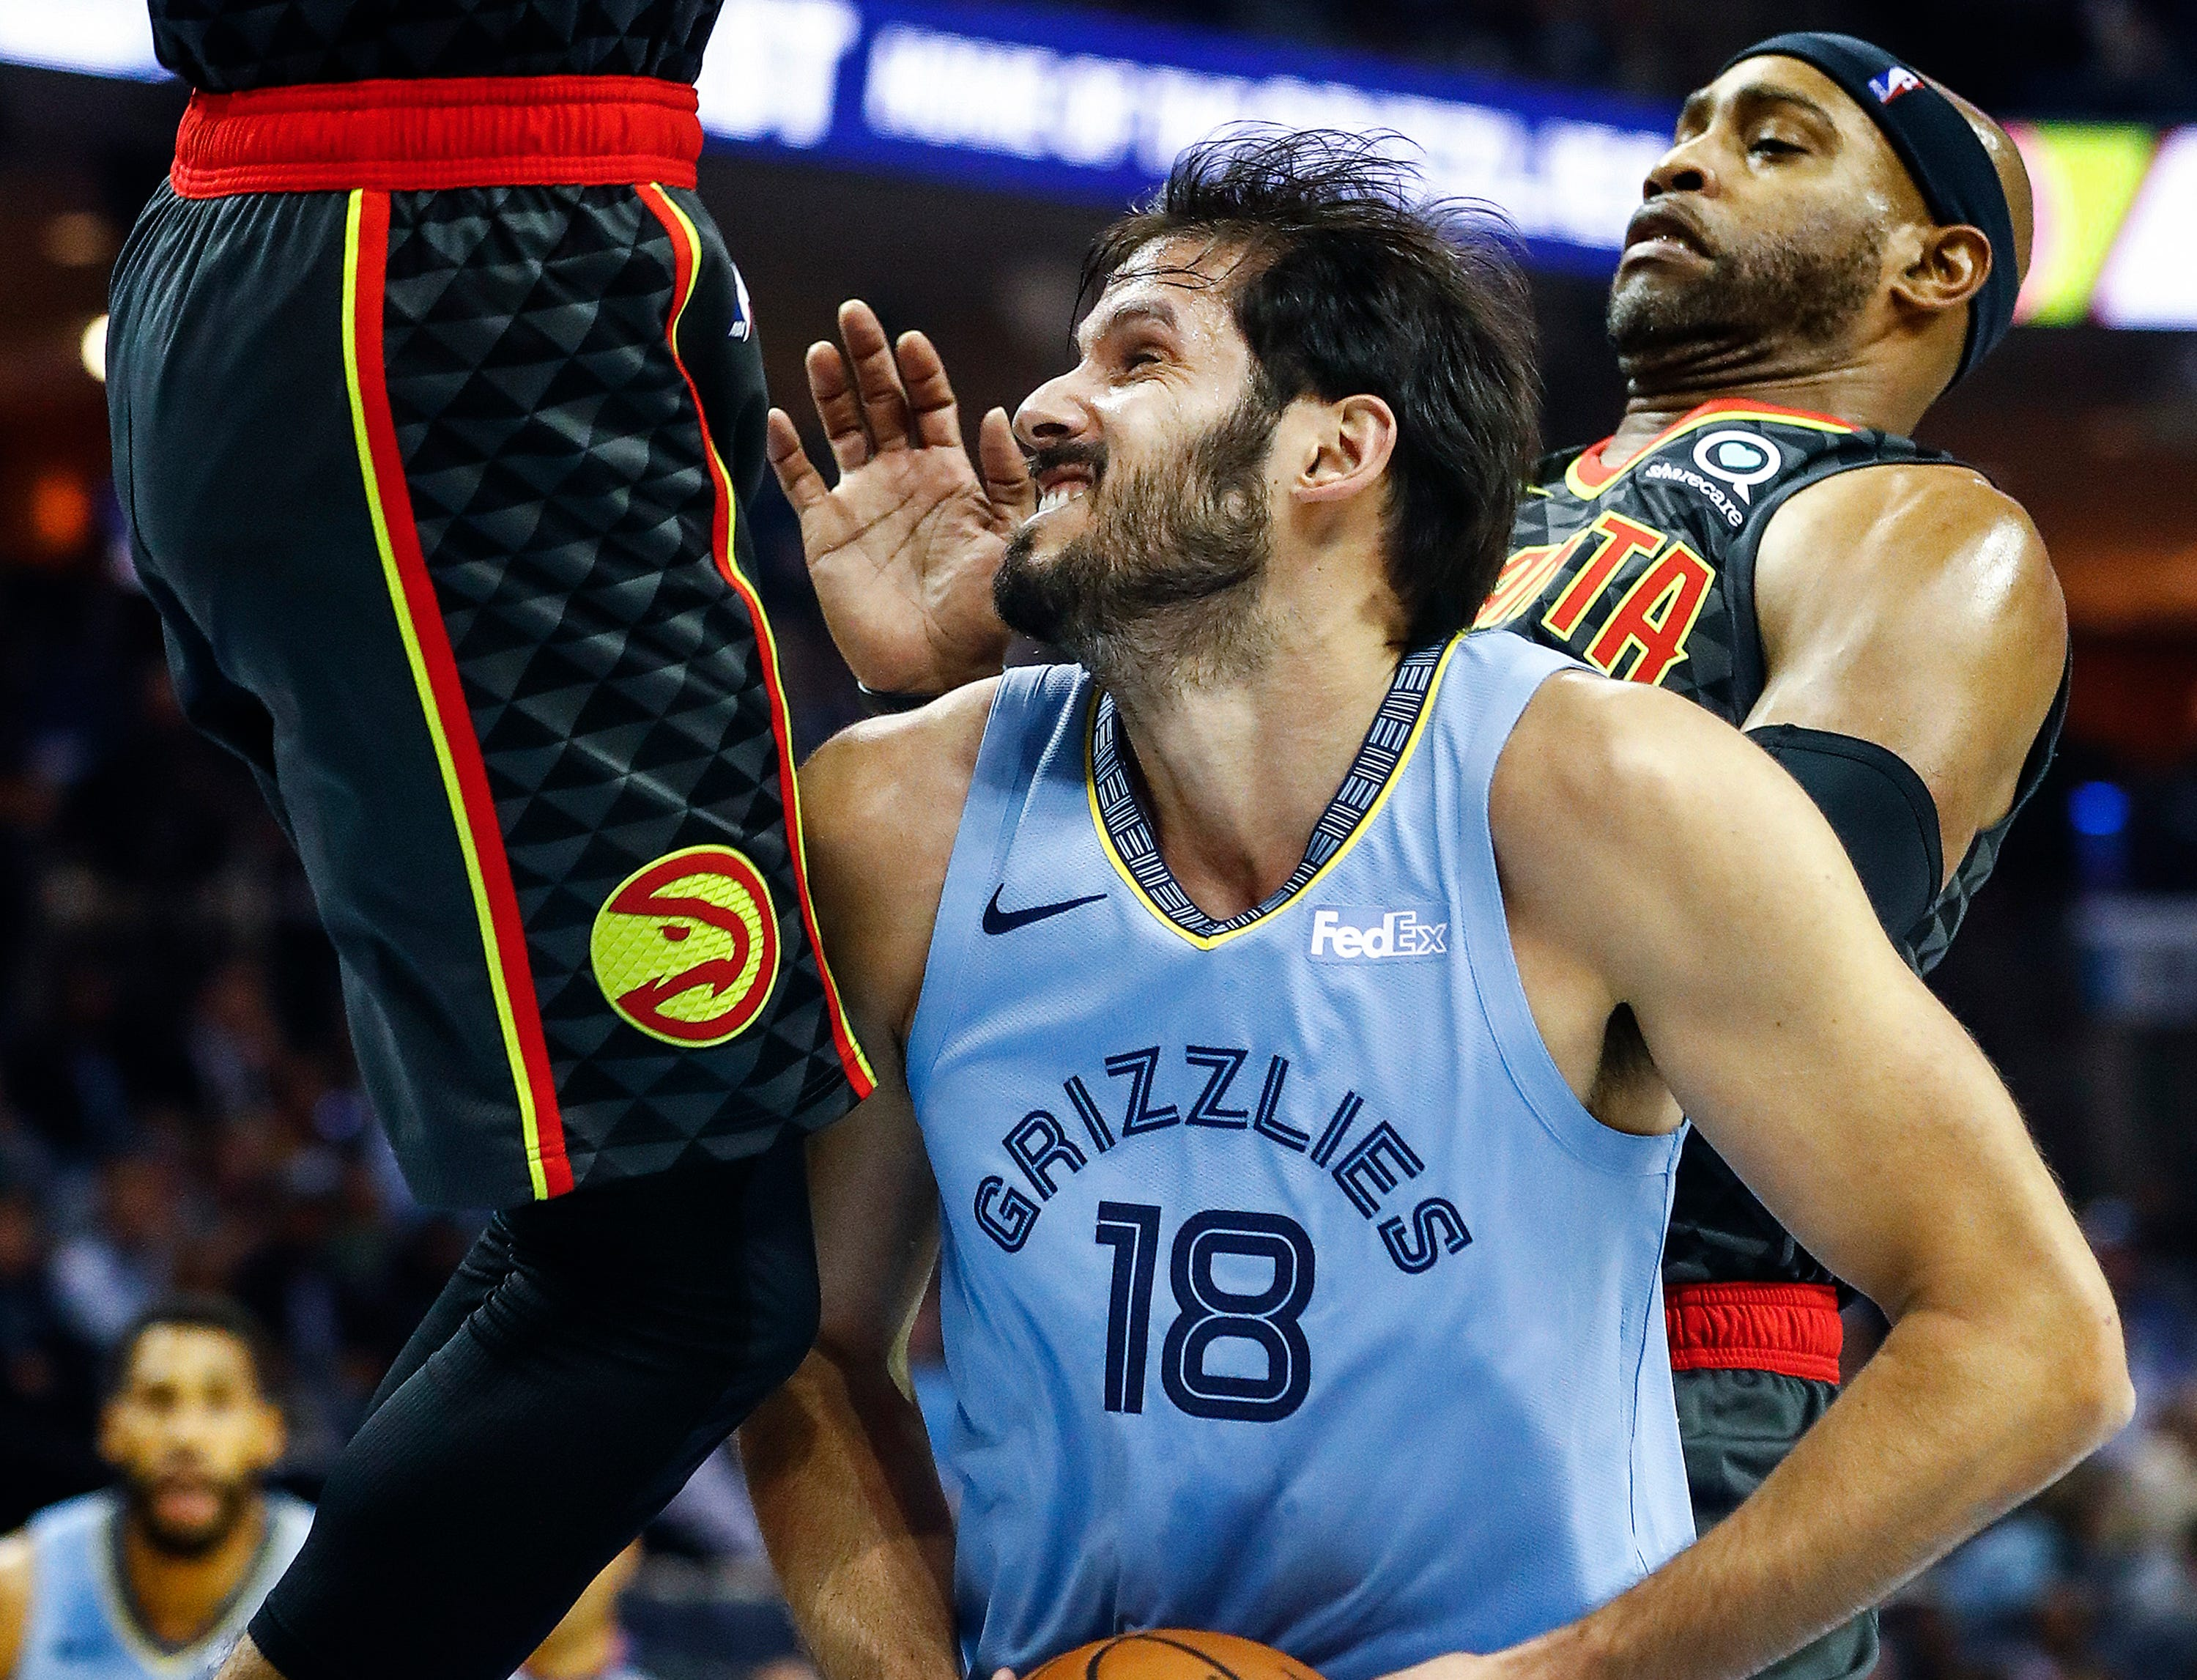 Memphis Grizzlies forward Omri Casspi (middle) drives the lane against the Atlanta Hawks defense in their home-opener at the FedExForum in Memphis, Tenn., Friday, October 19, 2018.